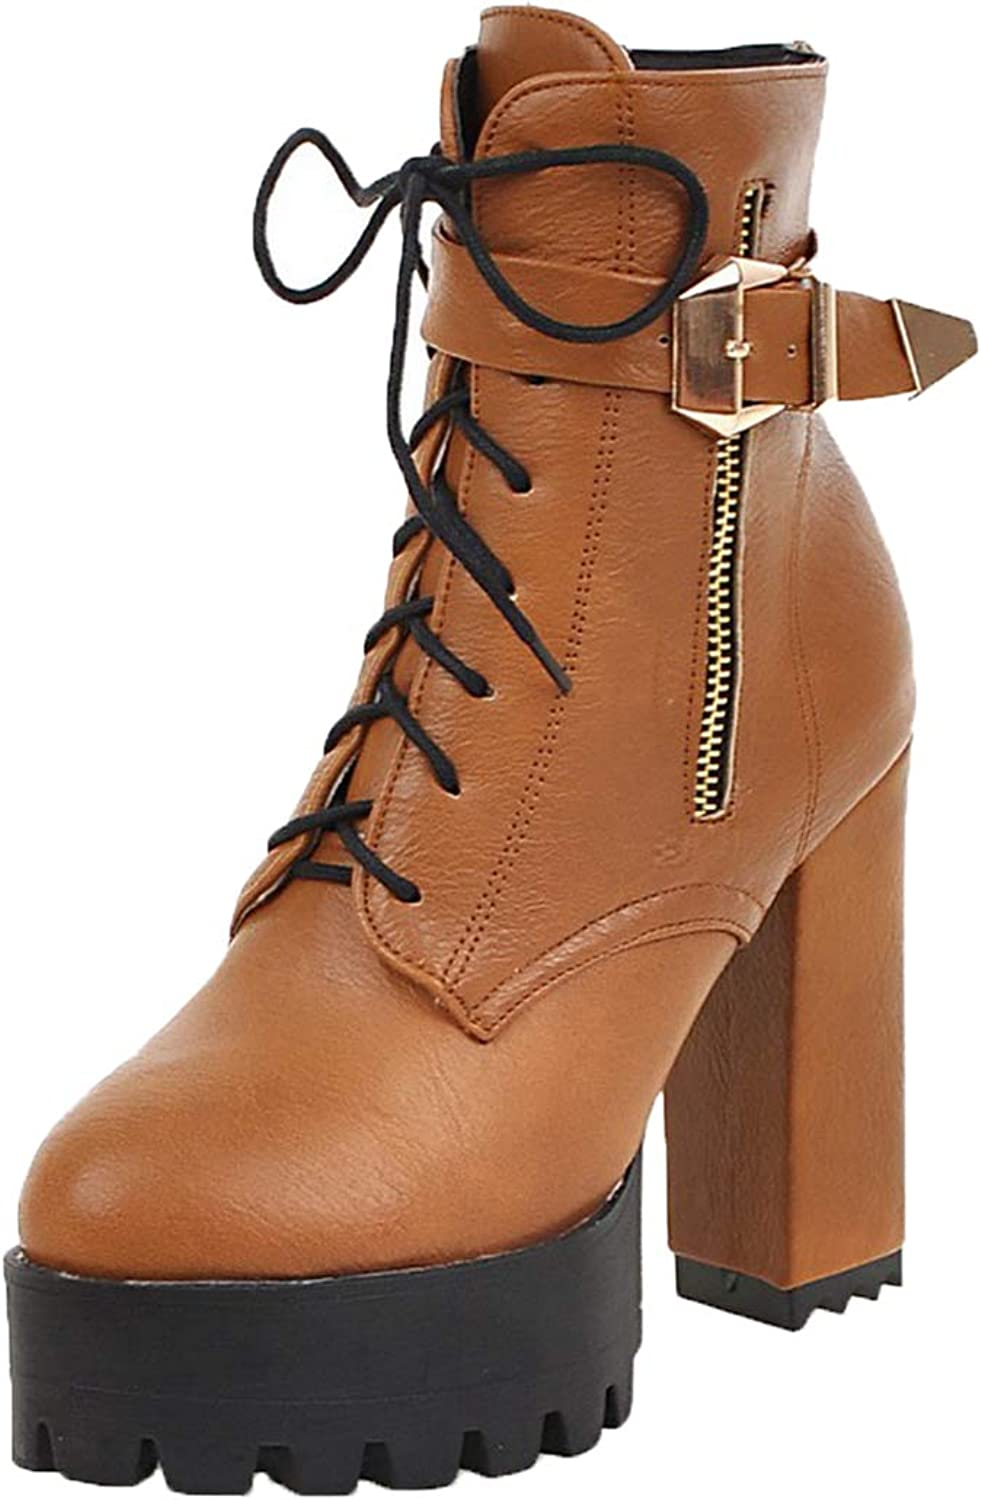 Vitalo Womens Lace Up Chunky High Heel Platform Ankle Boots with Buckle Zip Up Booties